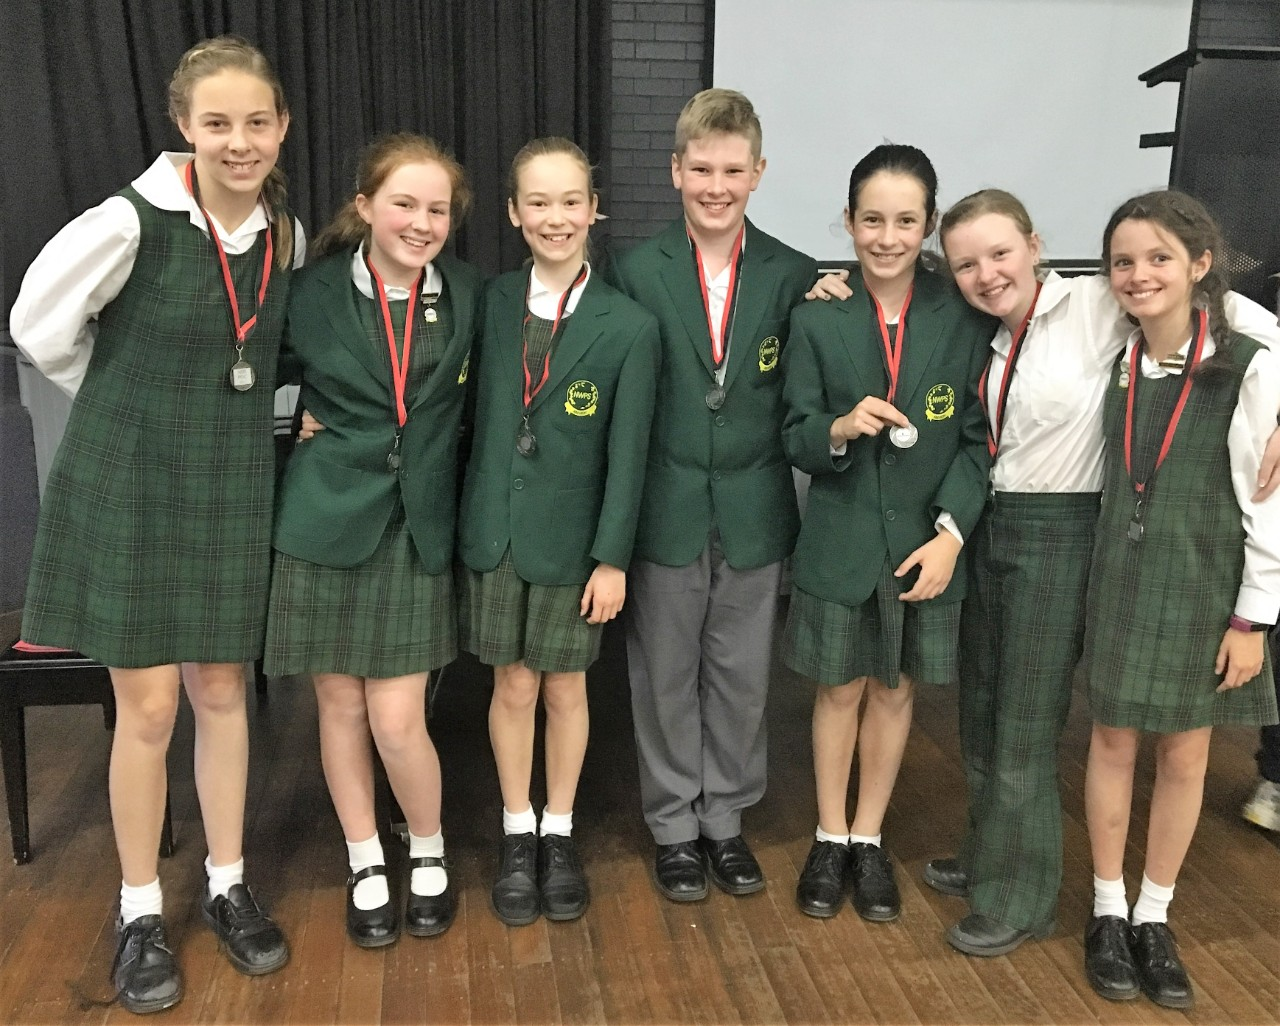 Students from Year 5 are cheering for earning the medal at Debate competition